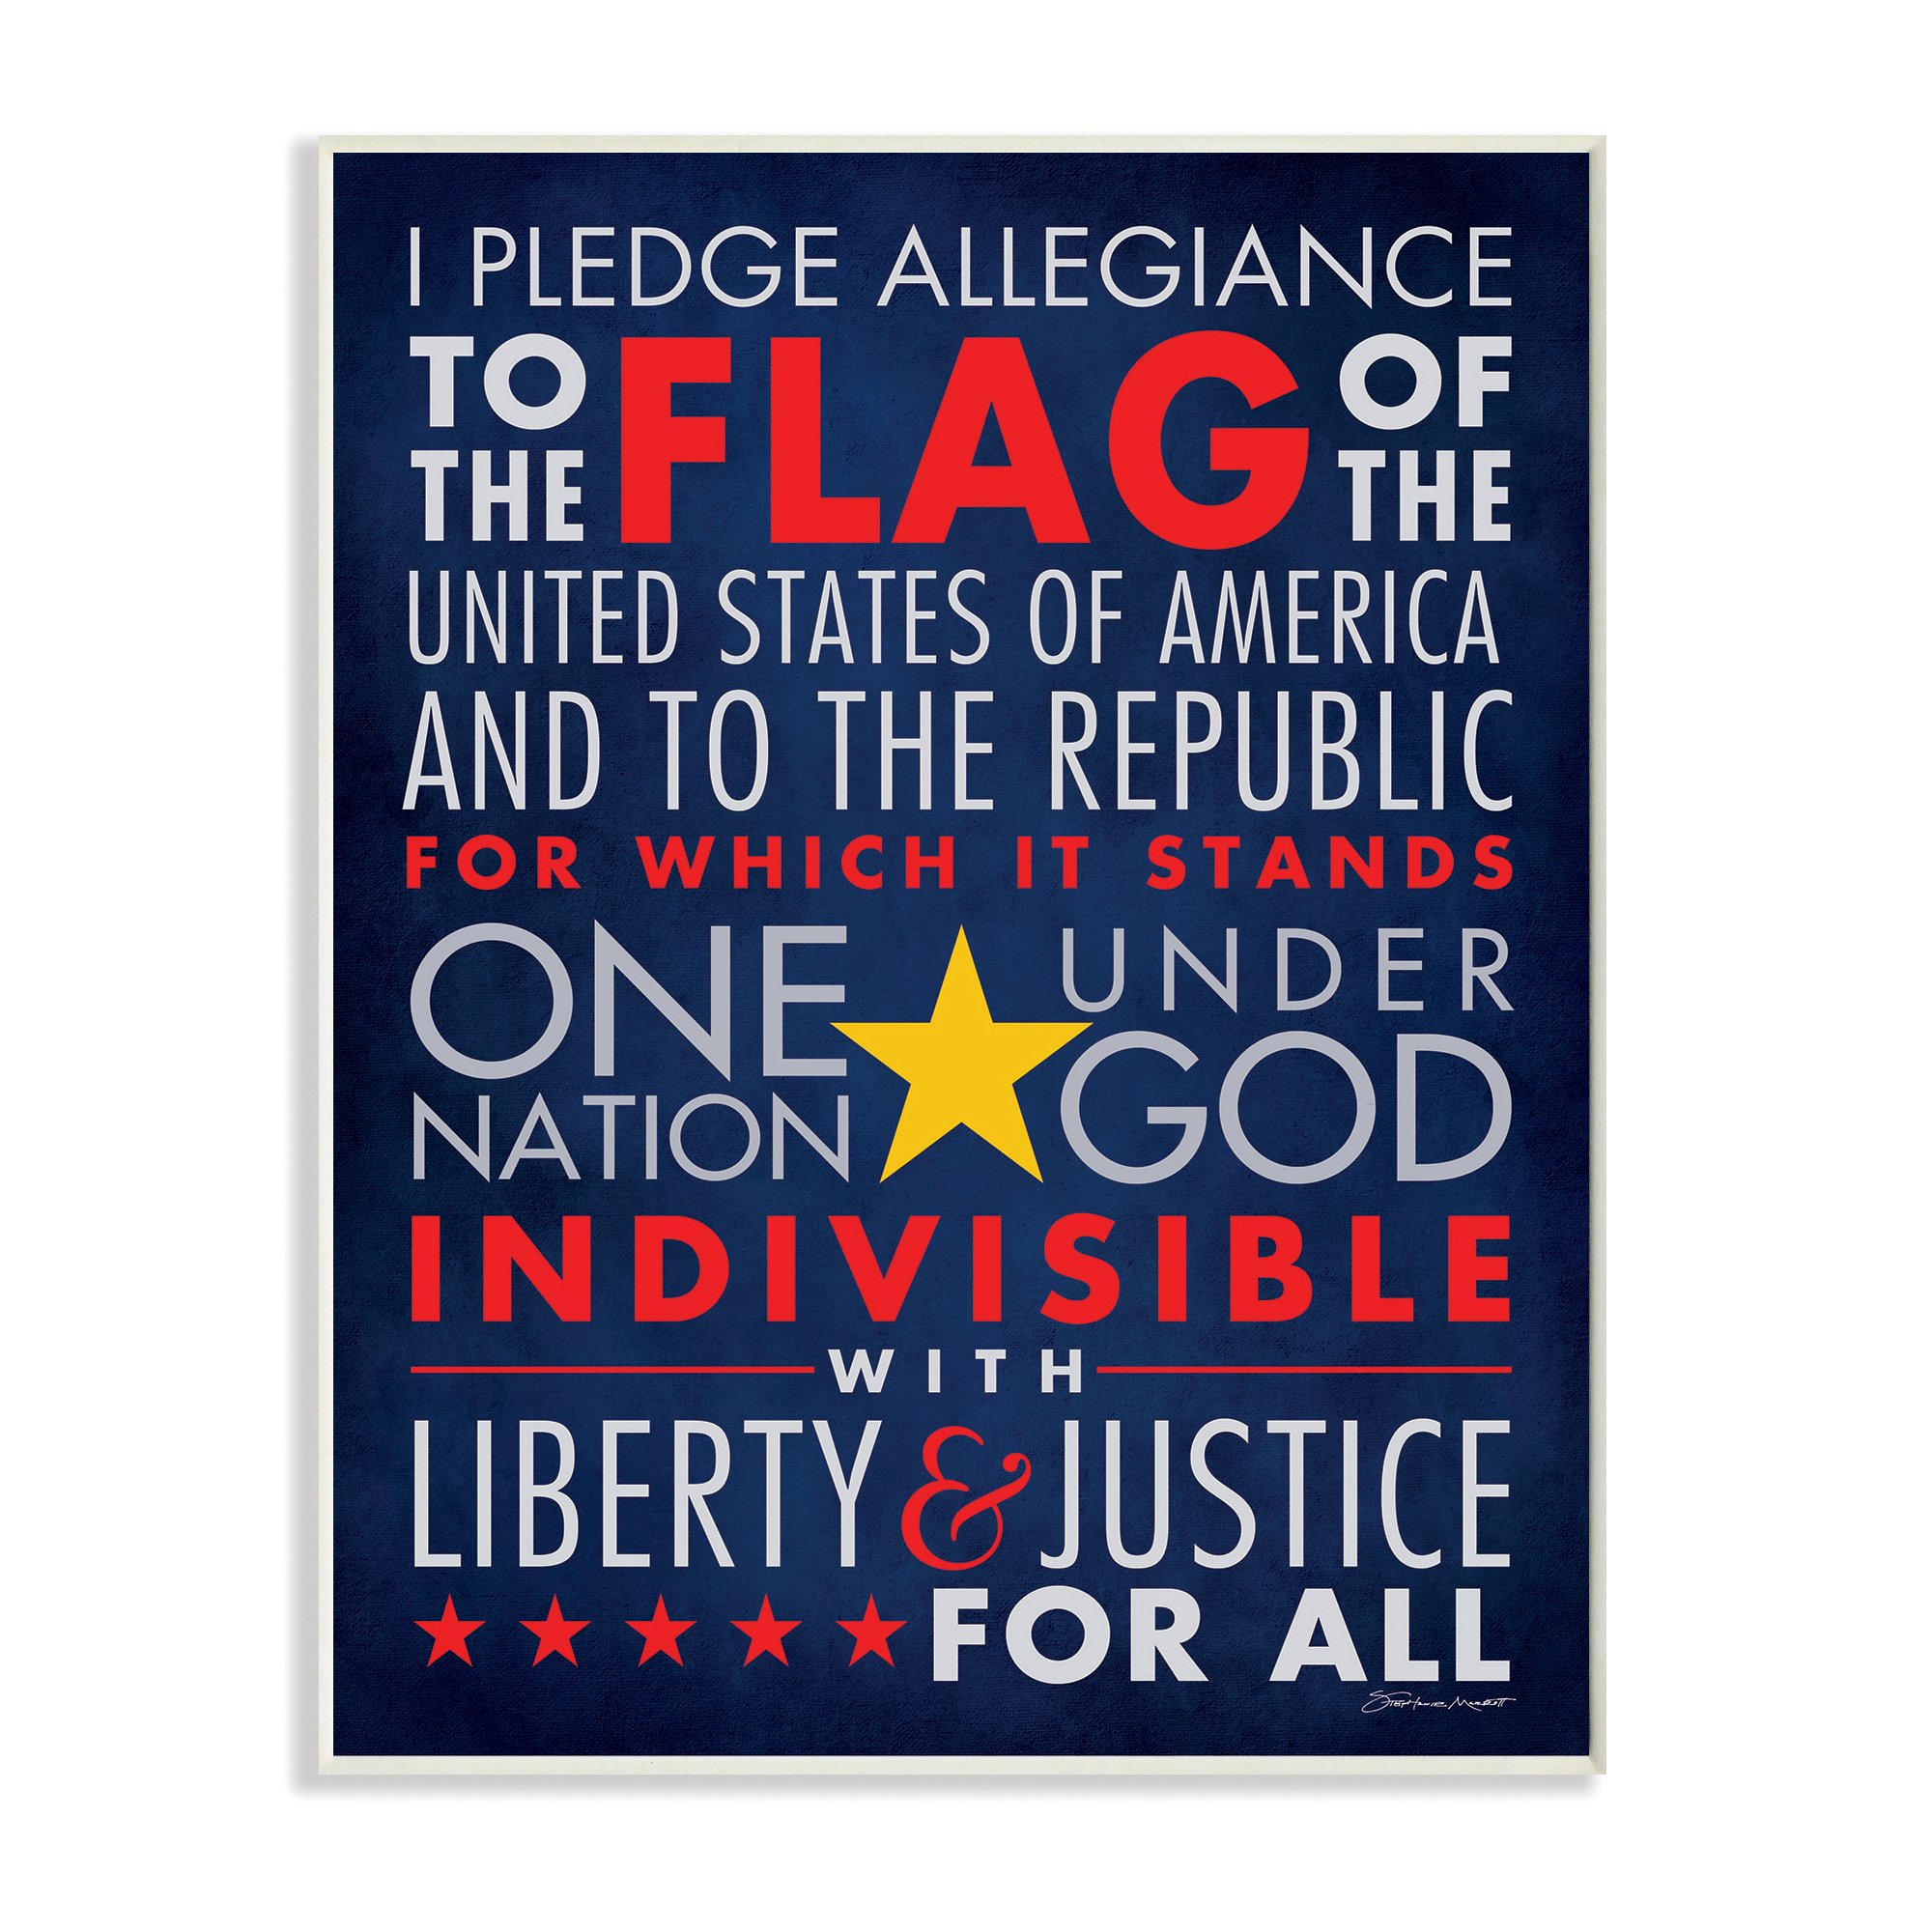 Stupell Home Décor The Pledge Of Allegiance Textual Art Wall Plaque, 11 x 0.5 x 15, Proudly Made in USA by The Kids Room by Stupell (Image #1)